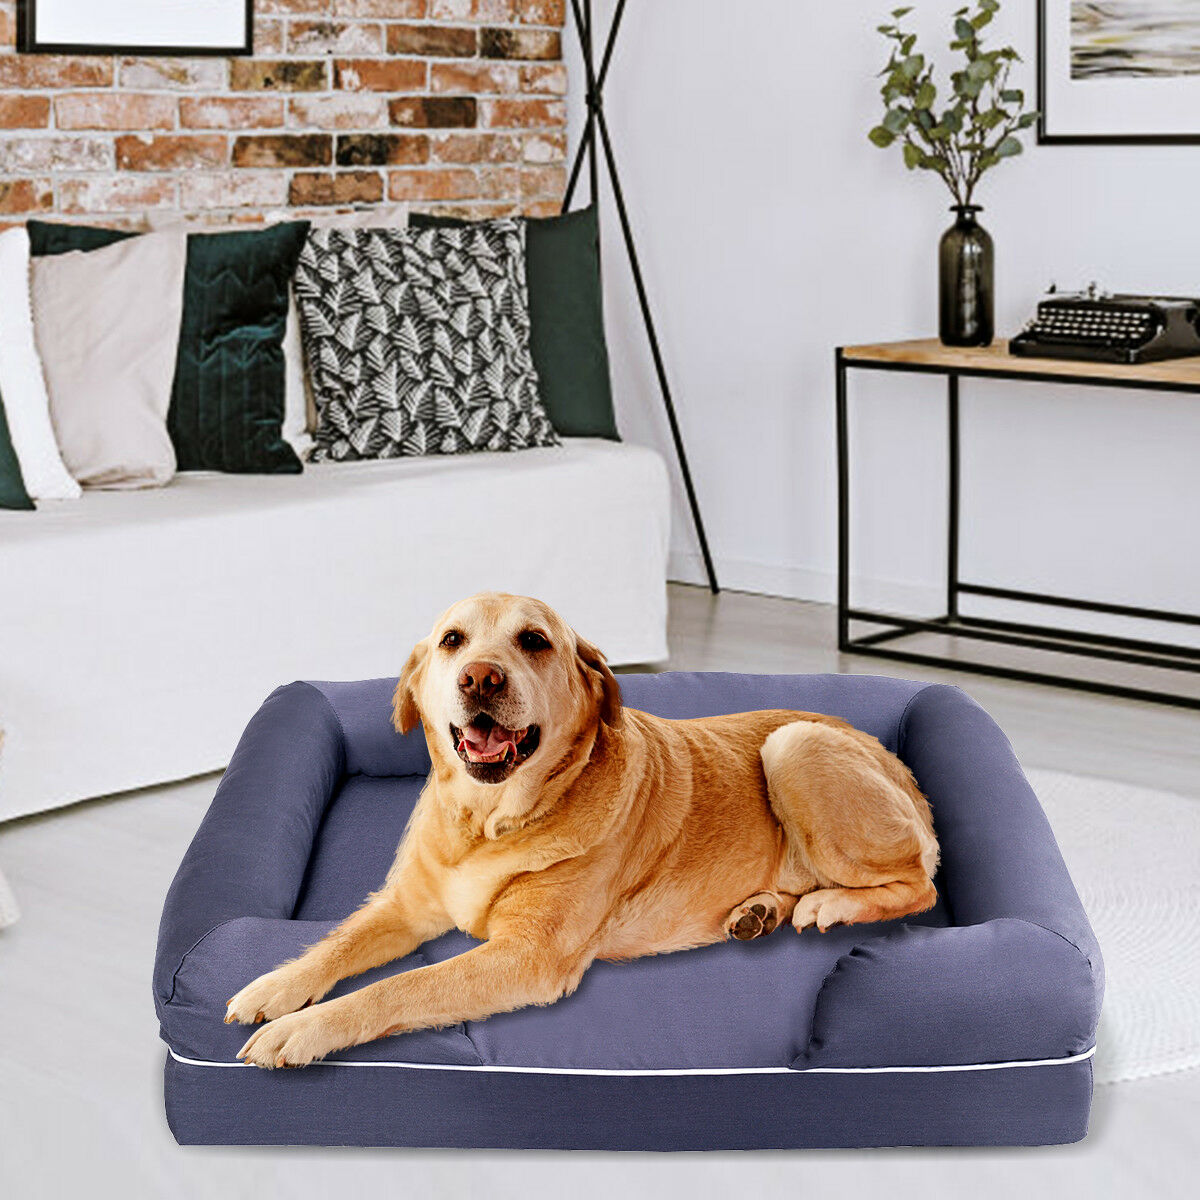 Details about Dog Sofa Pet Bed Lounge Solid Memory Foam Comfortable  Small/Large/X-Large Gray